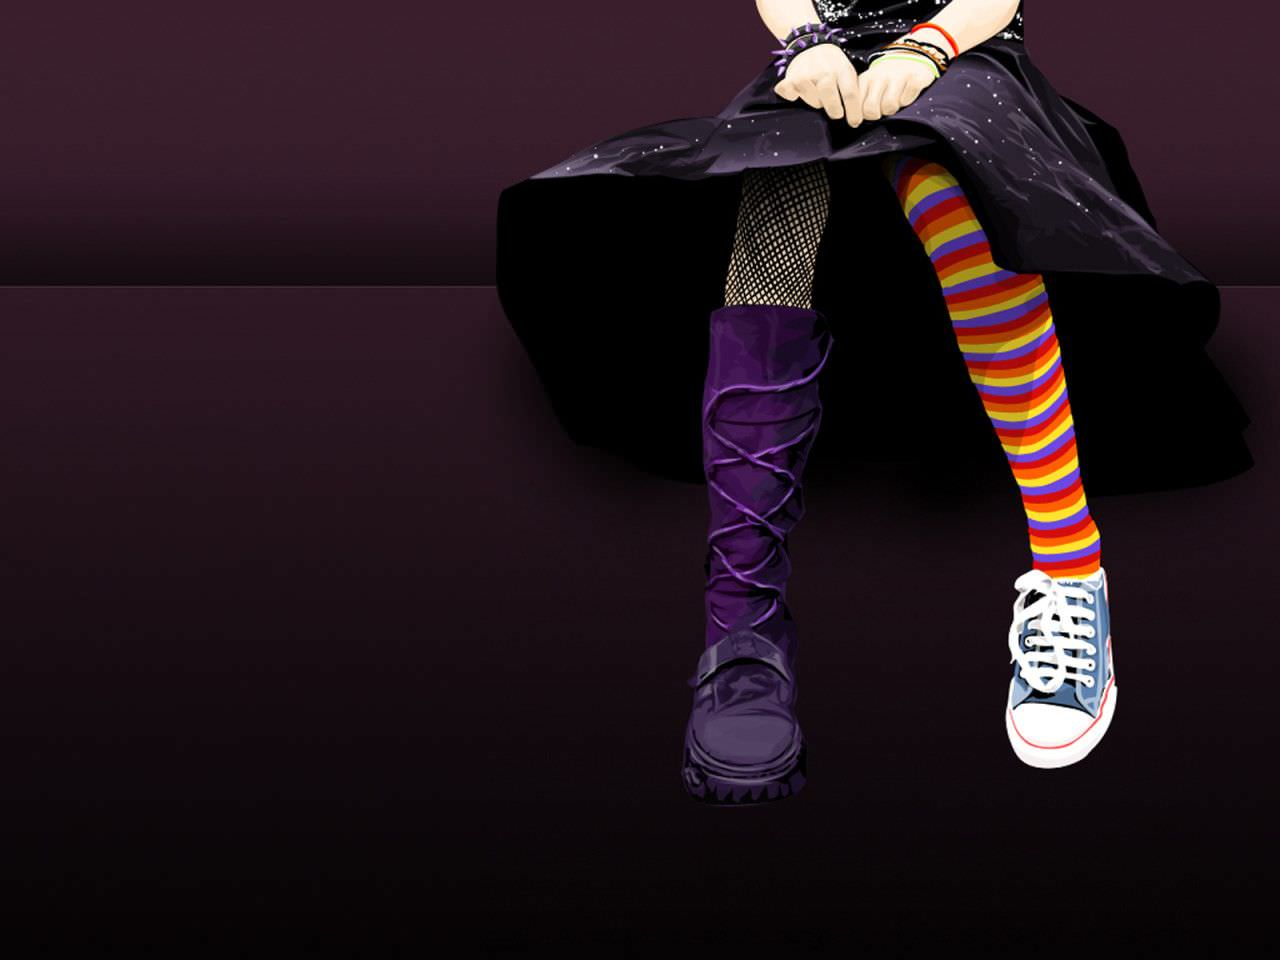 Emo Stellax Bieber HD Wallpaper